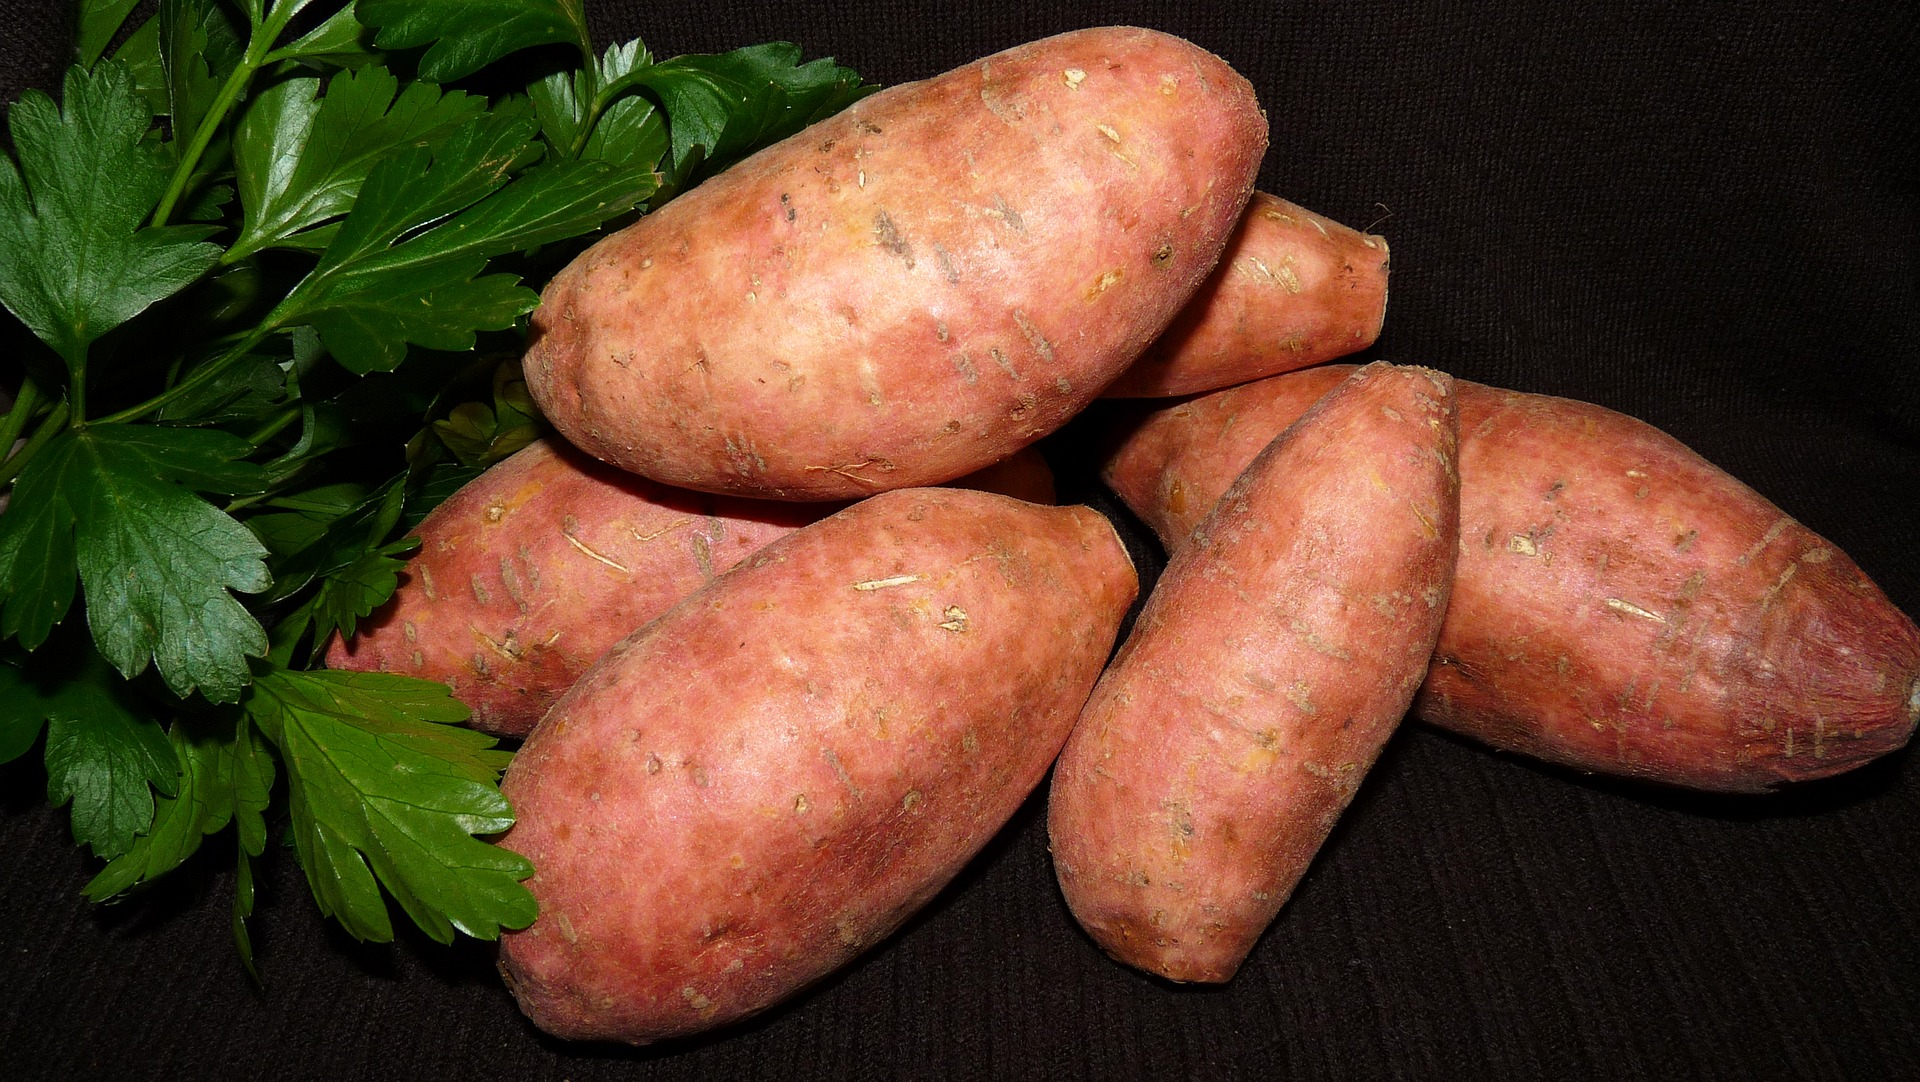 Sweet potatoes are part of a B12 diet.